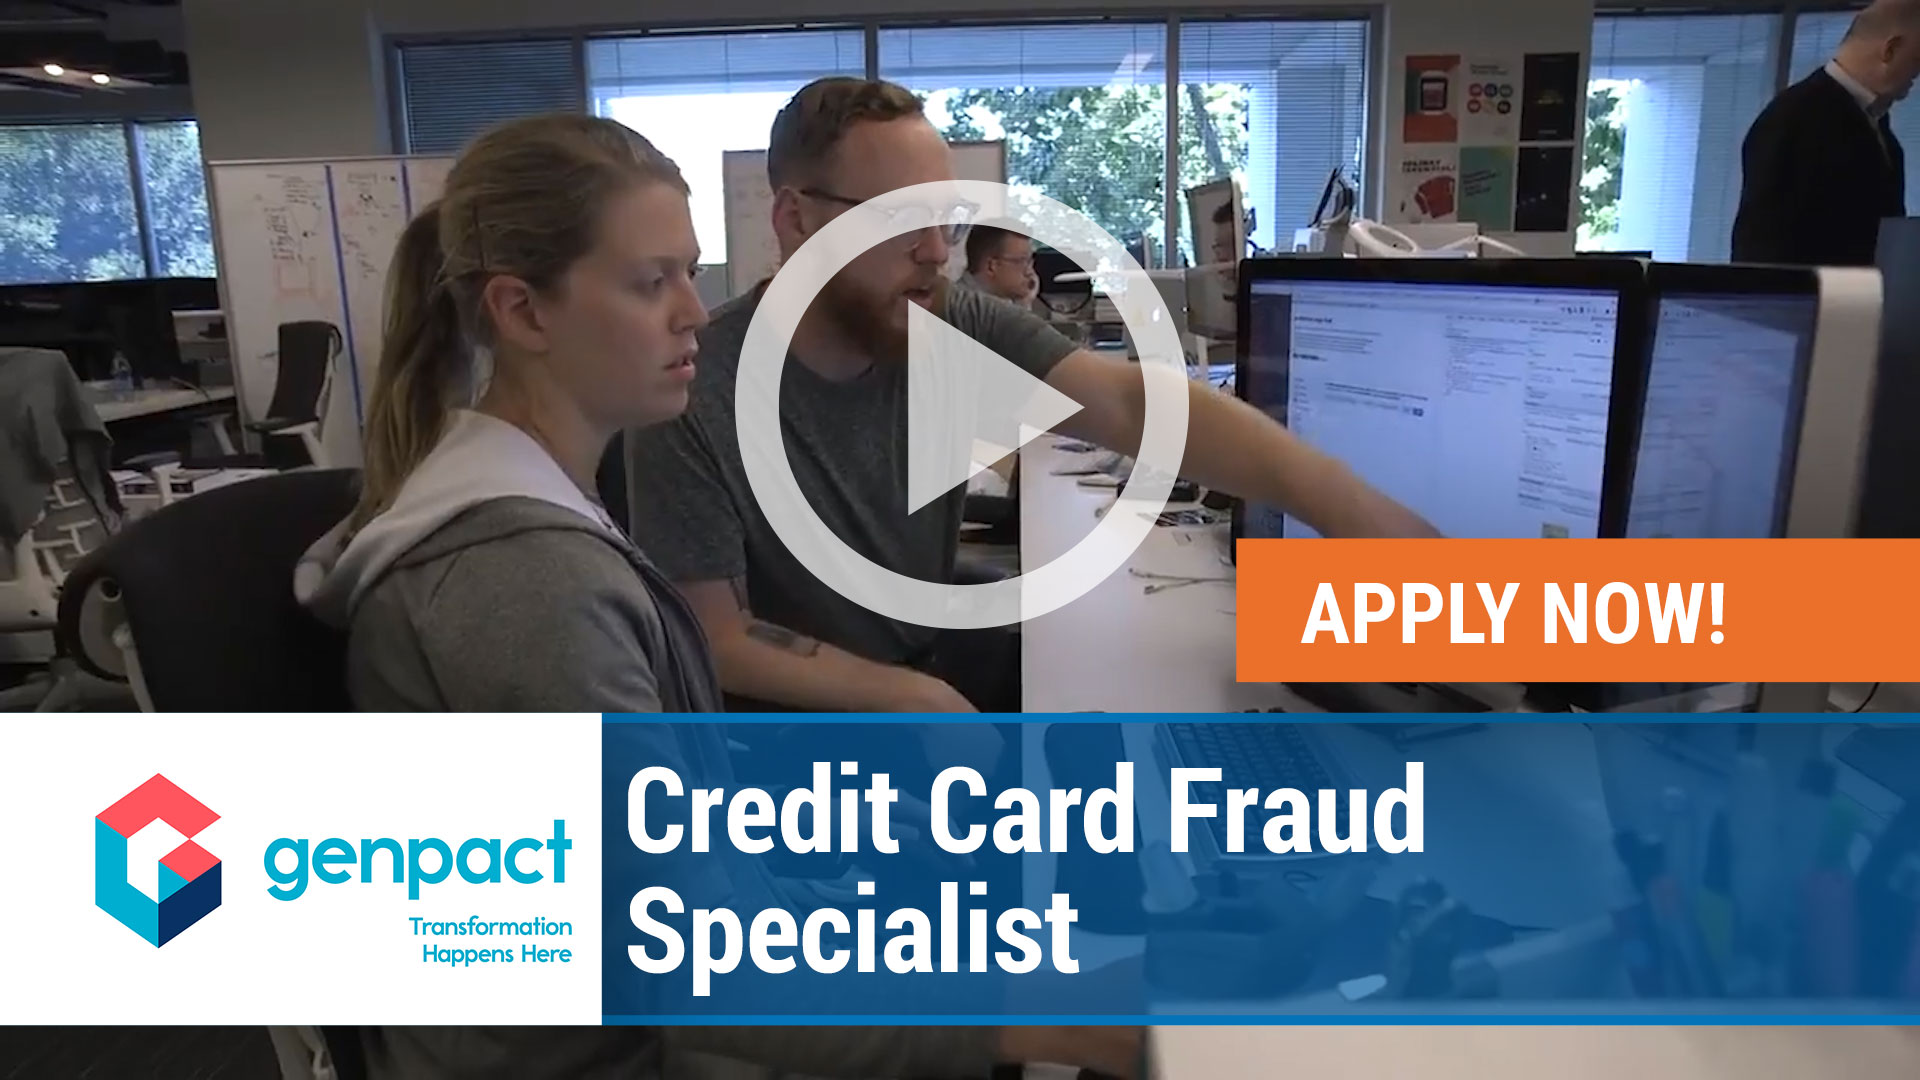 Watch our careers video for available job opening Credit Card Fraud Specialist in Richardson, TX, USA